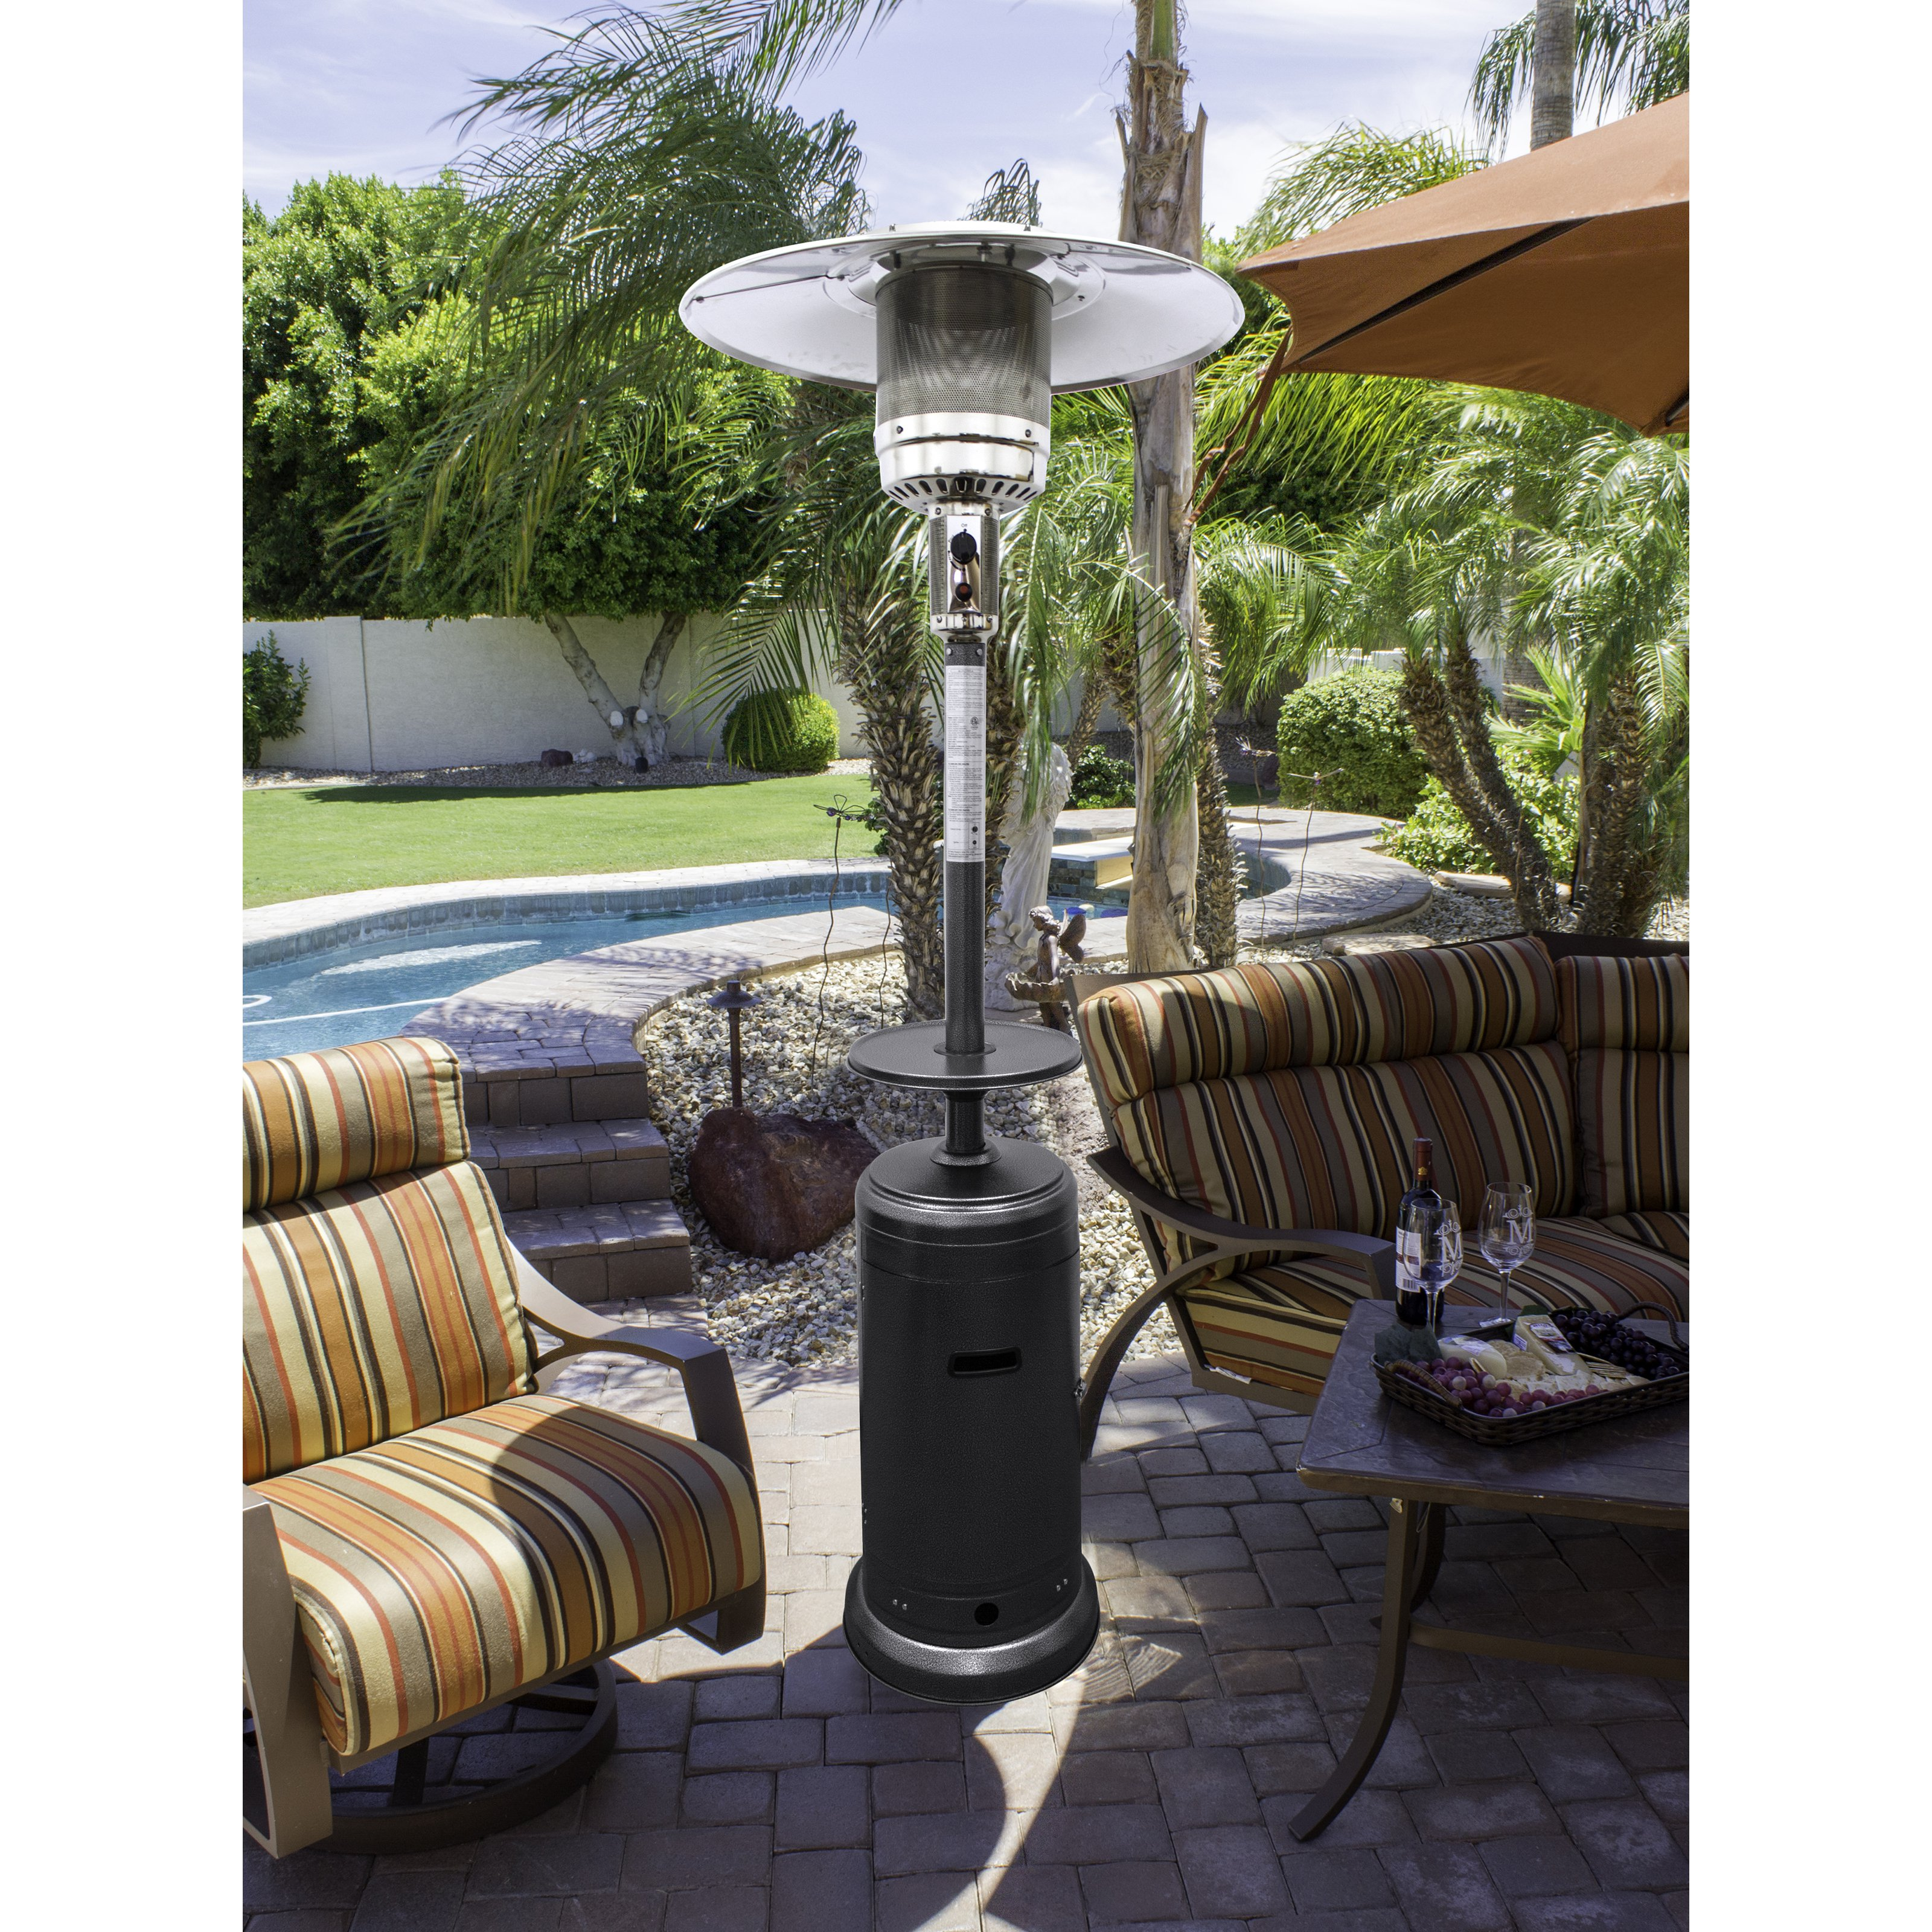 Hiland Hammered Bronze Patio Heater with Table